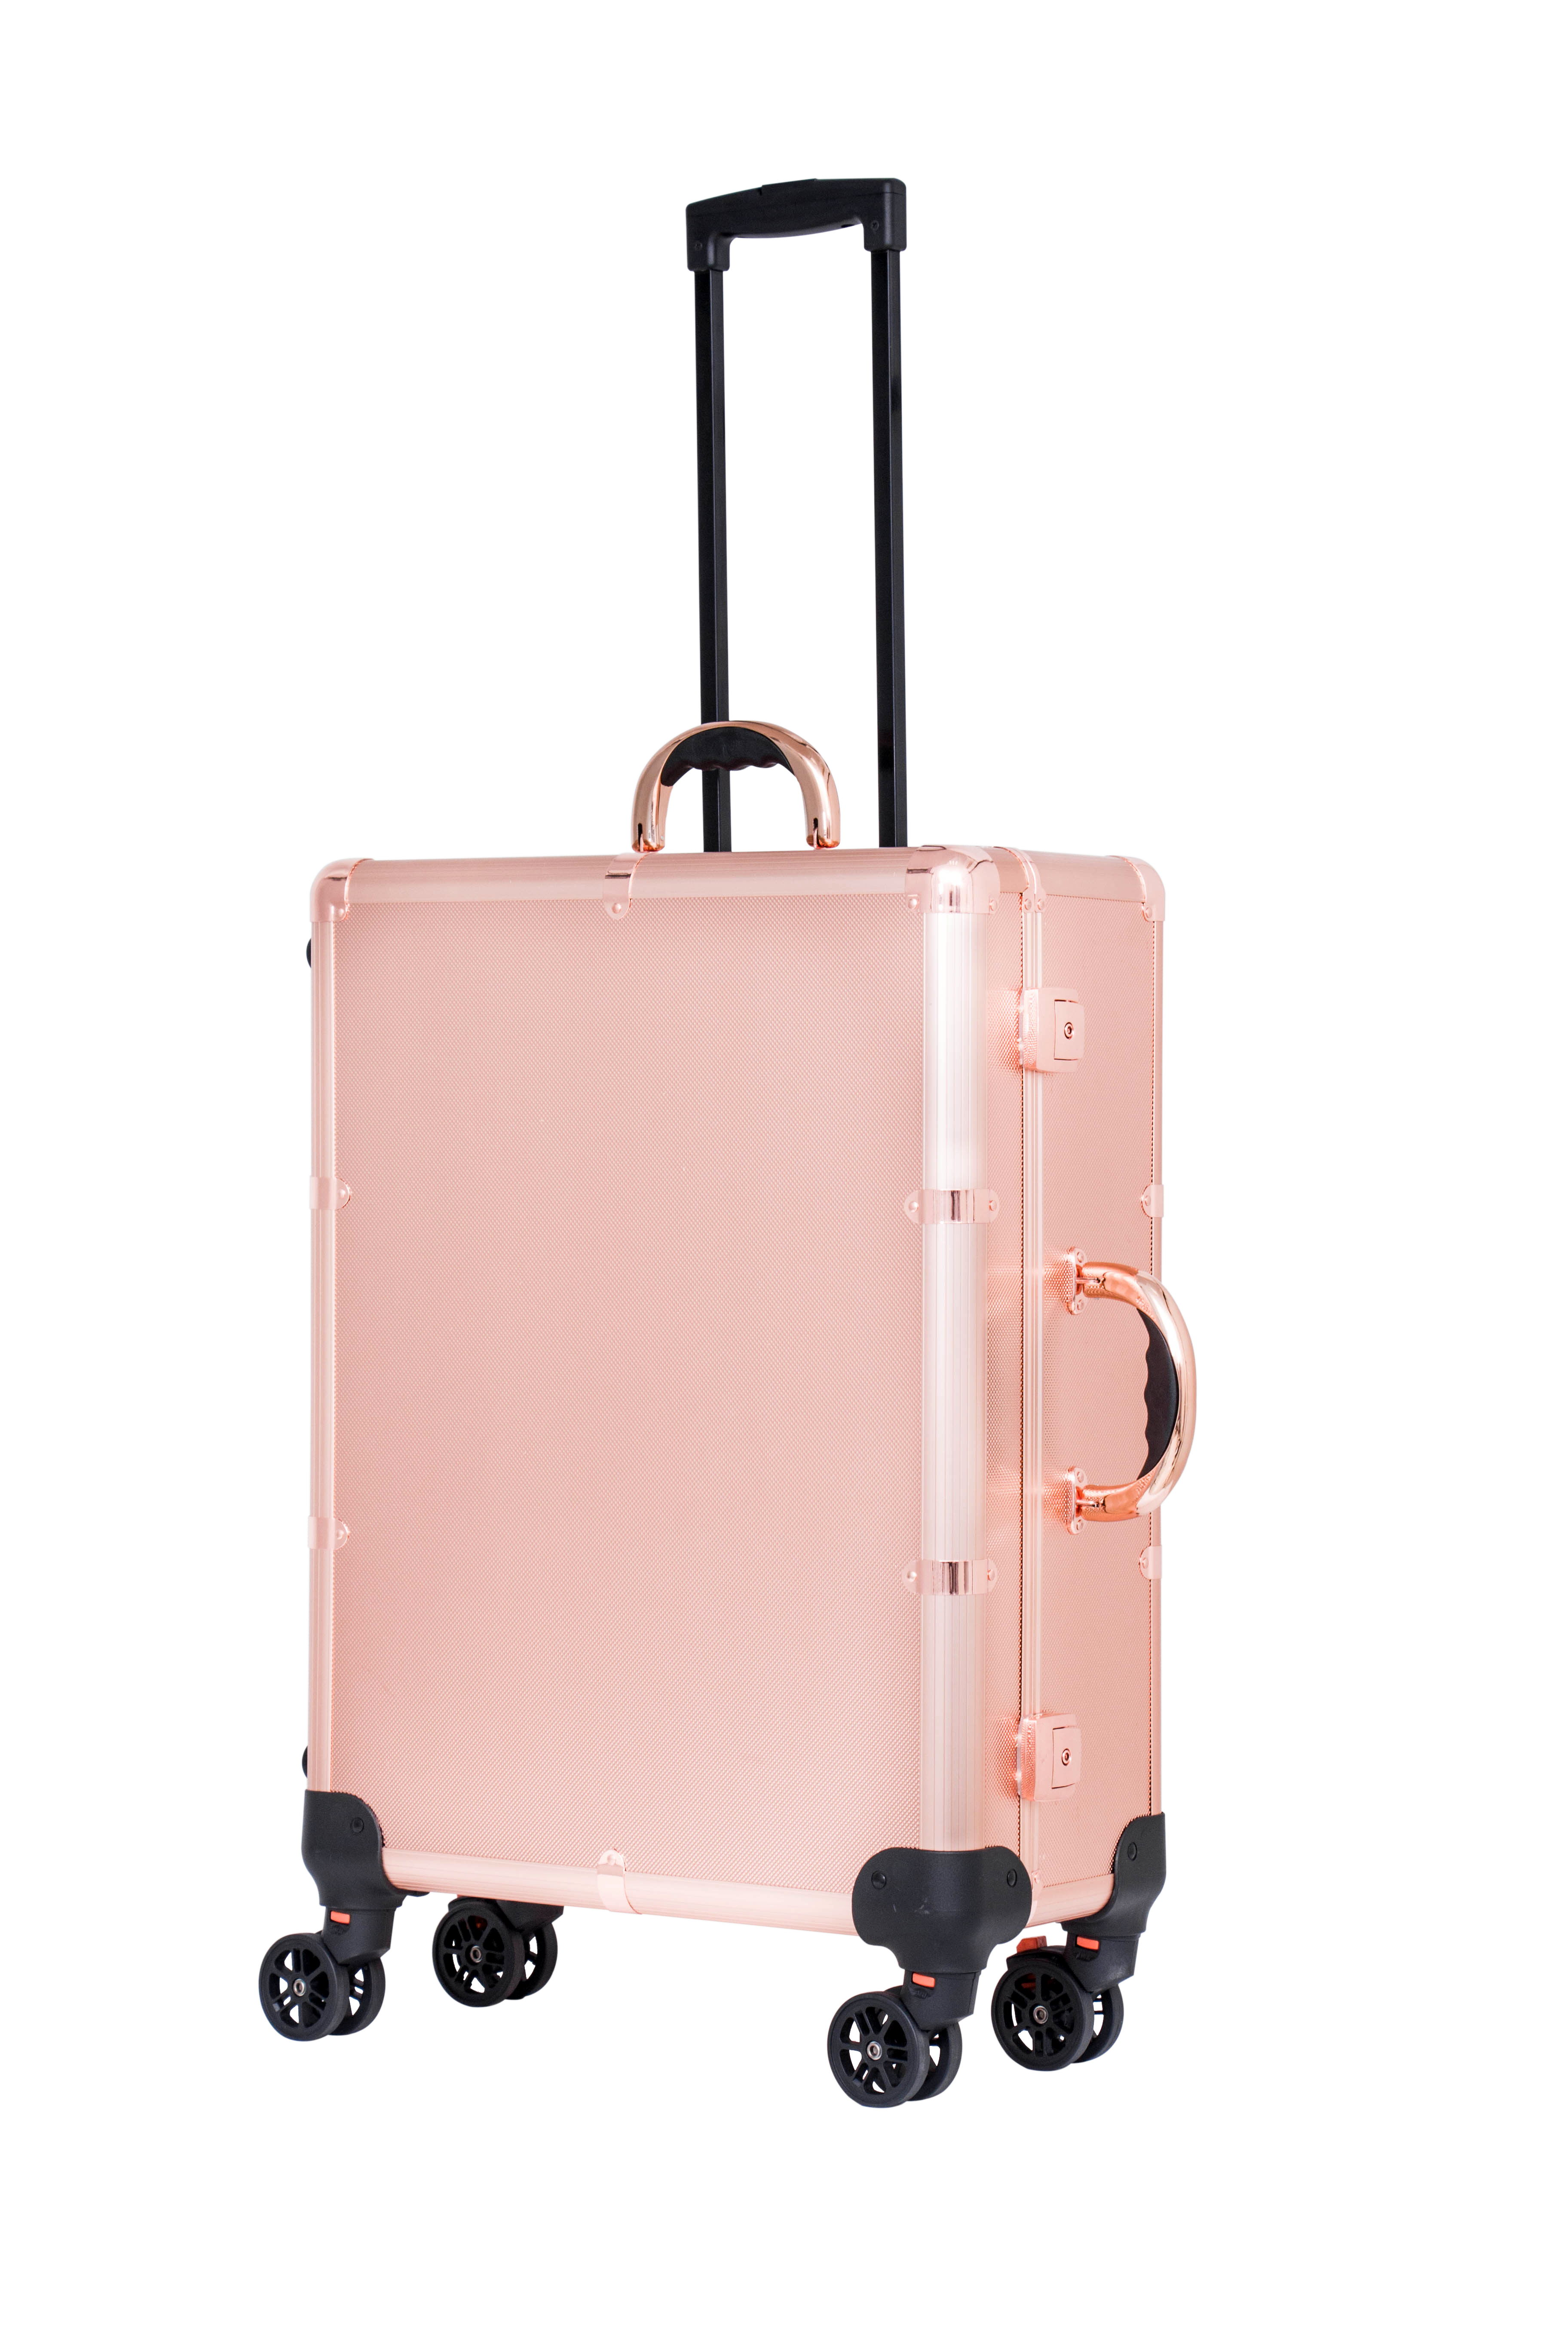 Best Selling Makeup case with Lights Wedding Vanity Trolley Promakeupcase